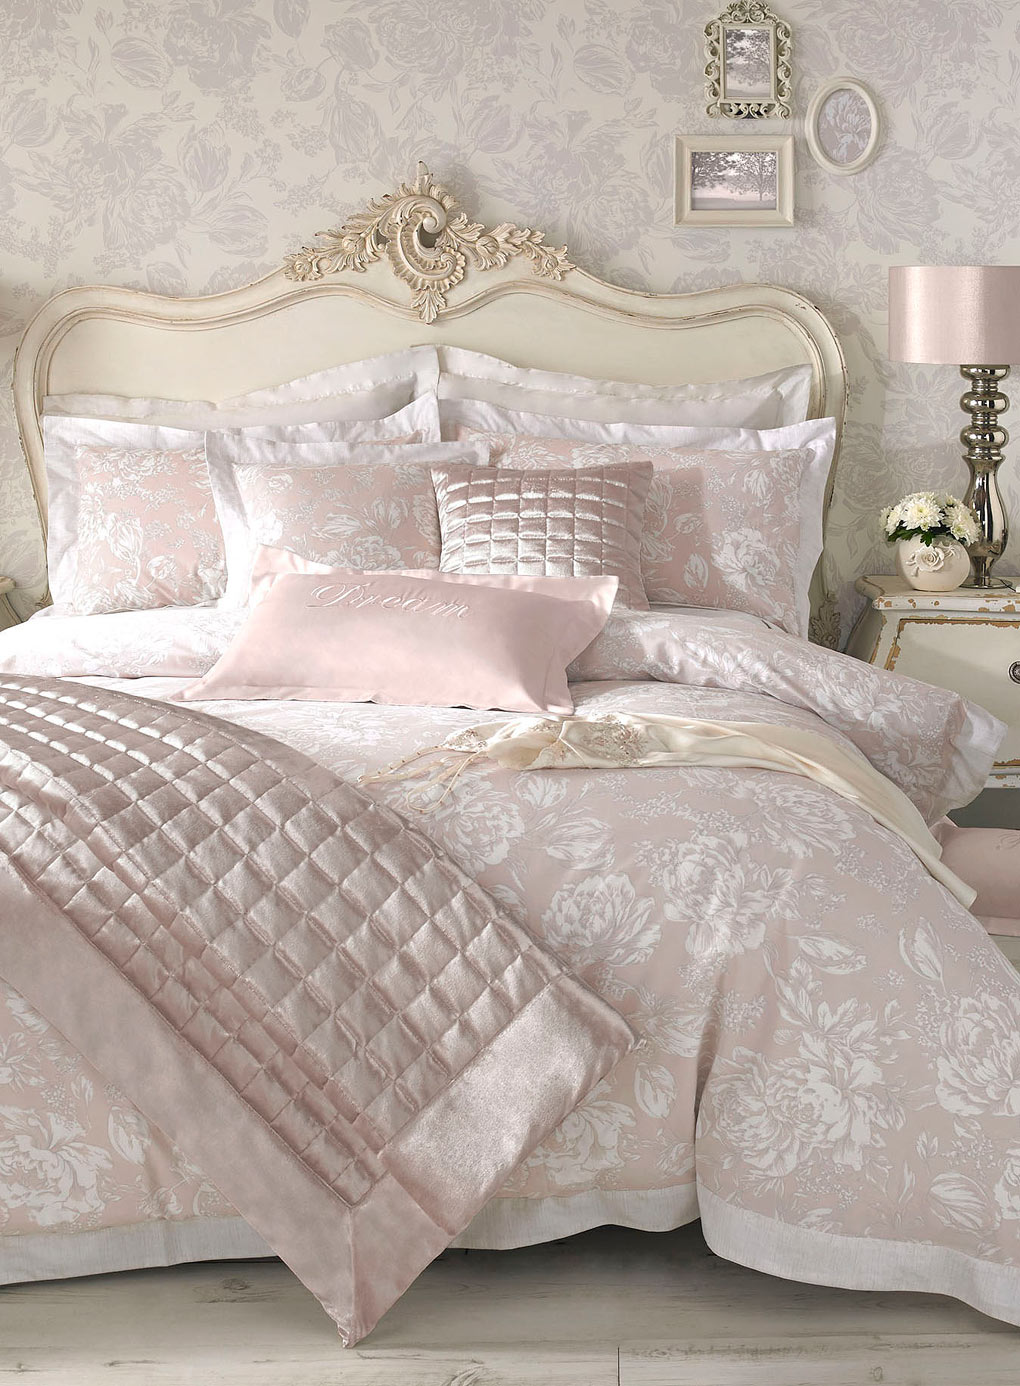 1848471441_large How to Choose the Perfect Bridal Bedspreads